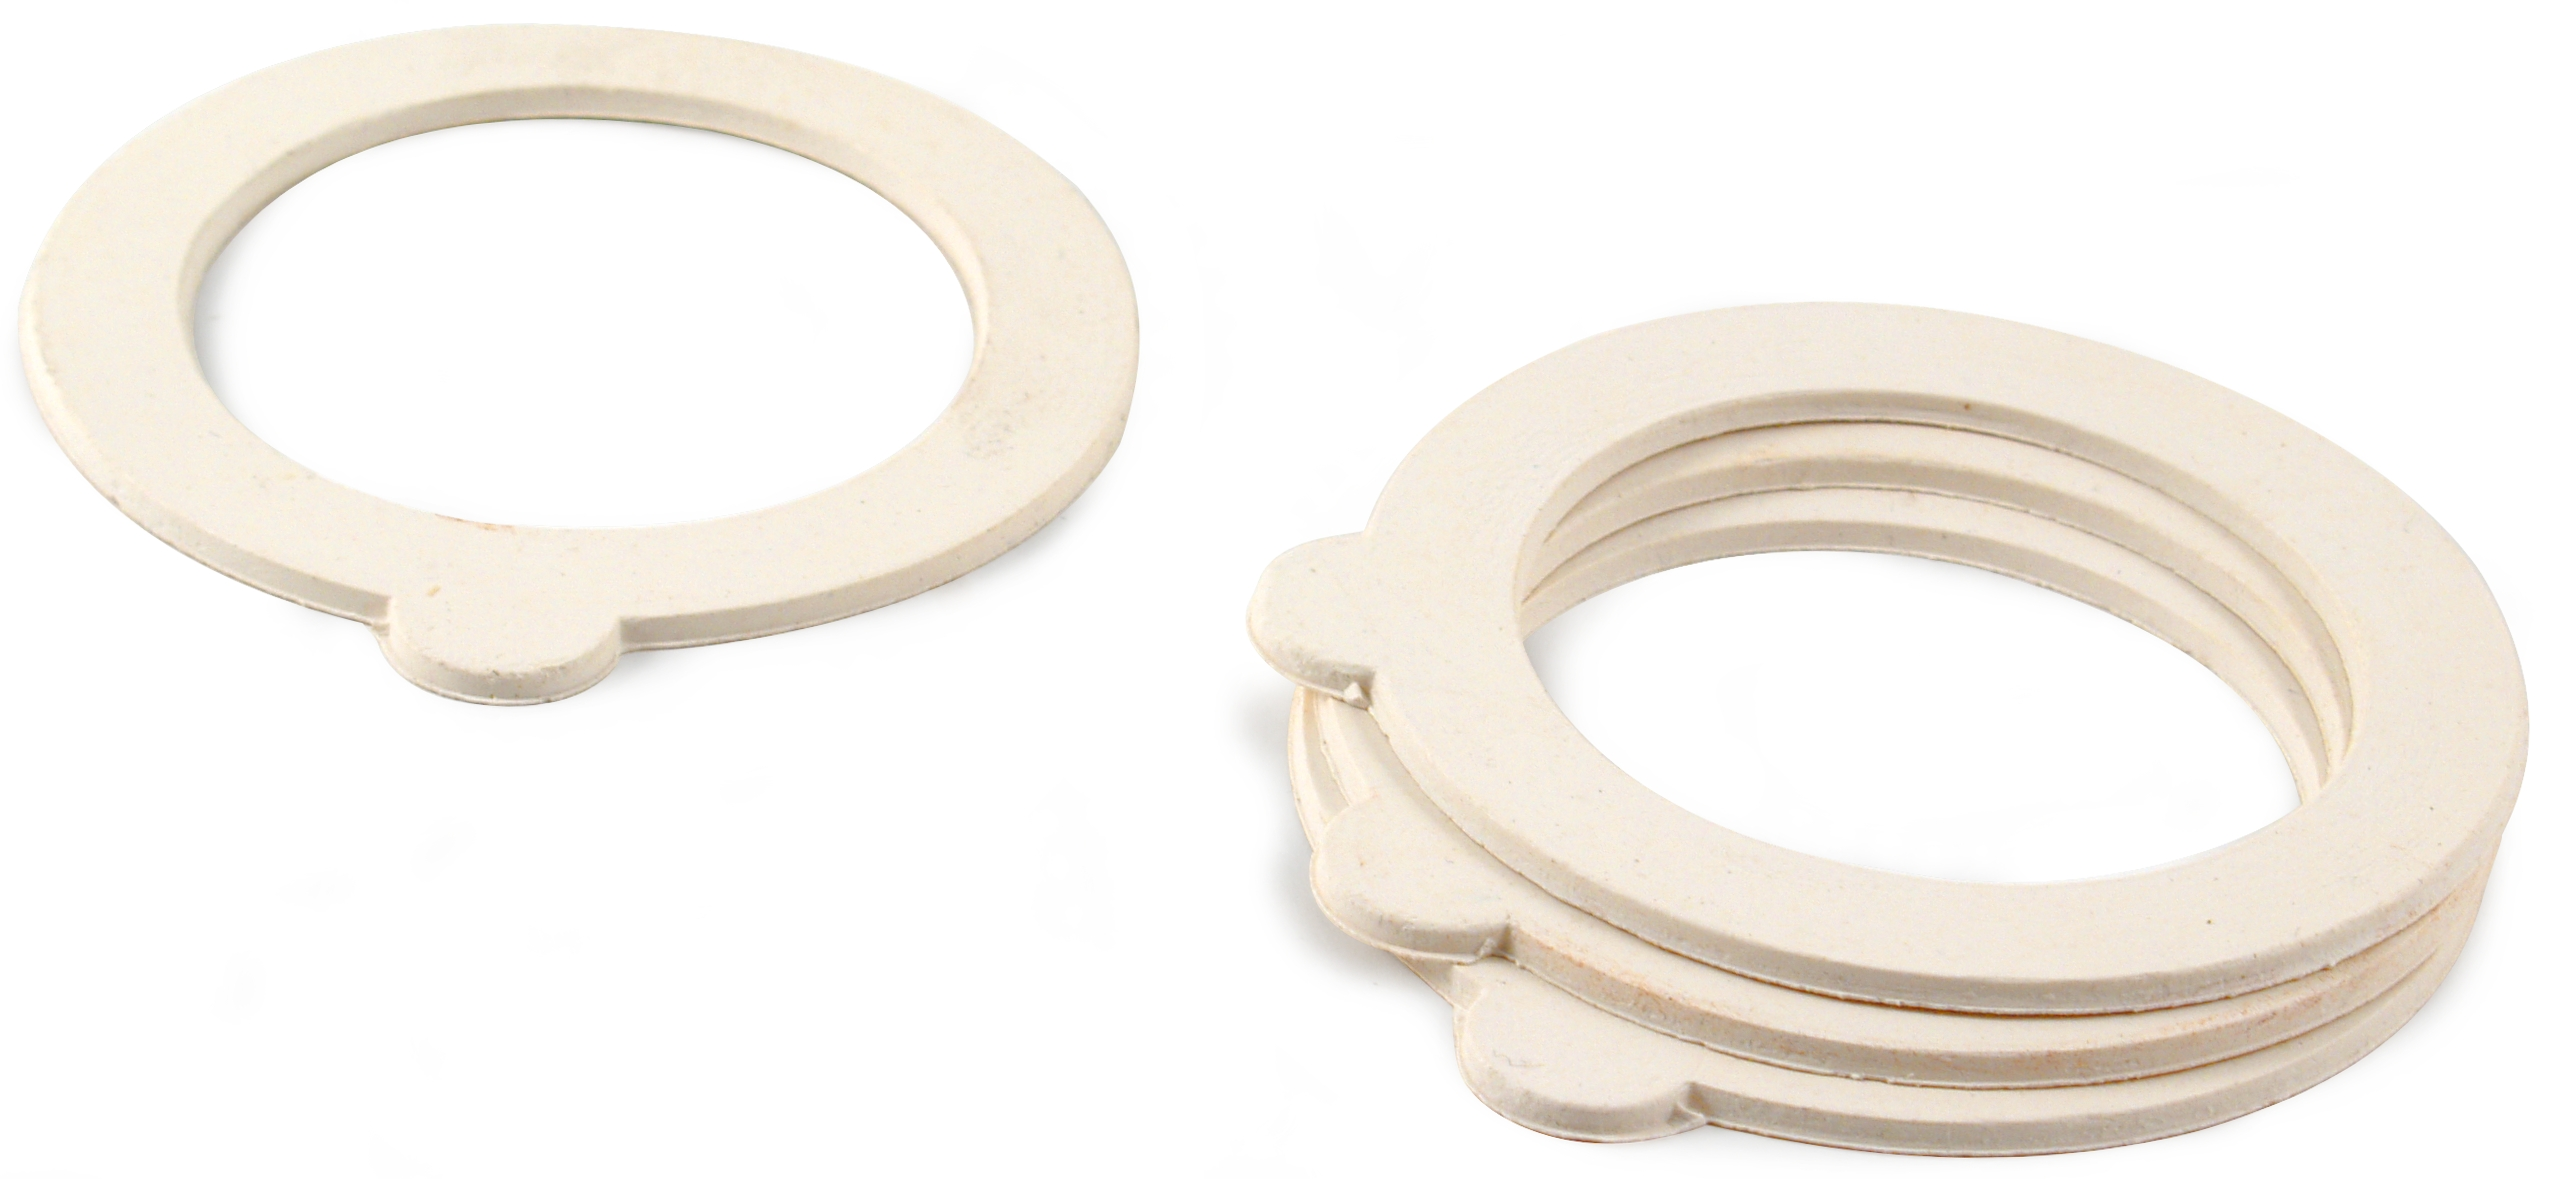 Grant Howard Rubber Canning Jar Gasket, Set of 4